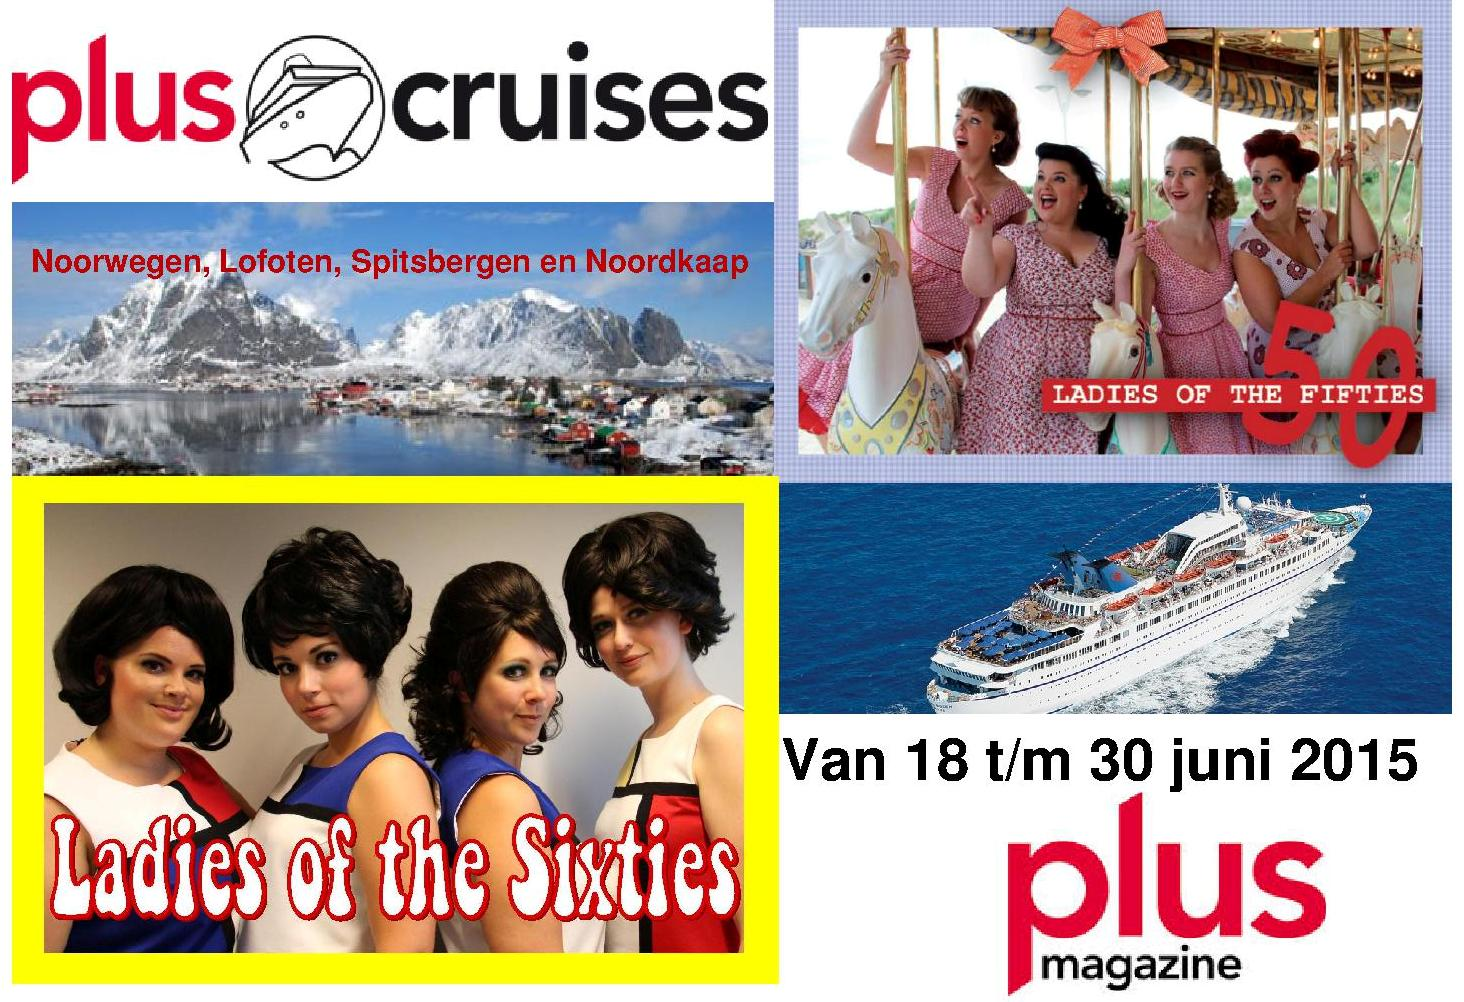 Plus magazine cruise